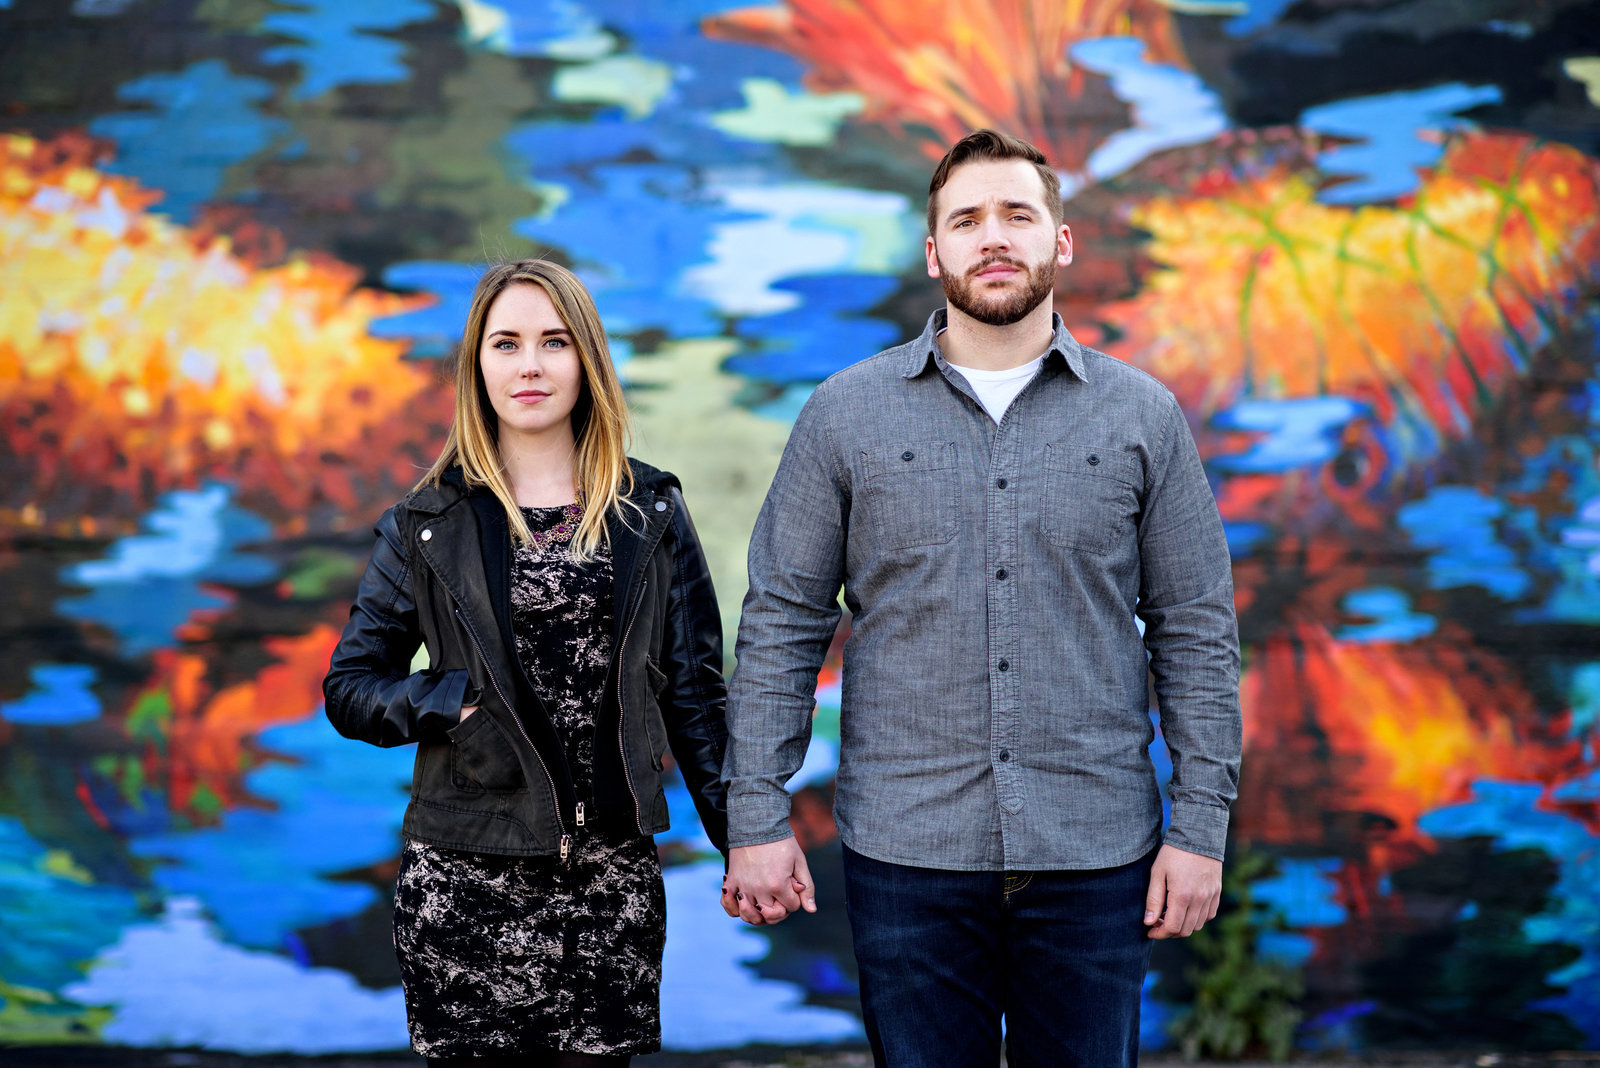 Engaged couple hold hands  in front of a graffiti wall in northern liberties.